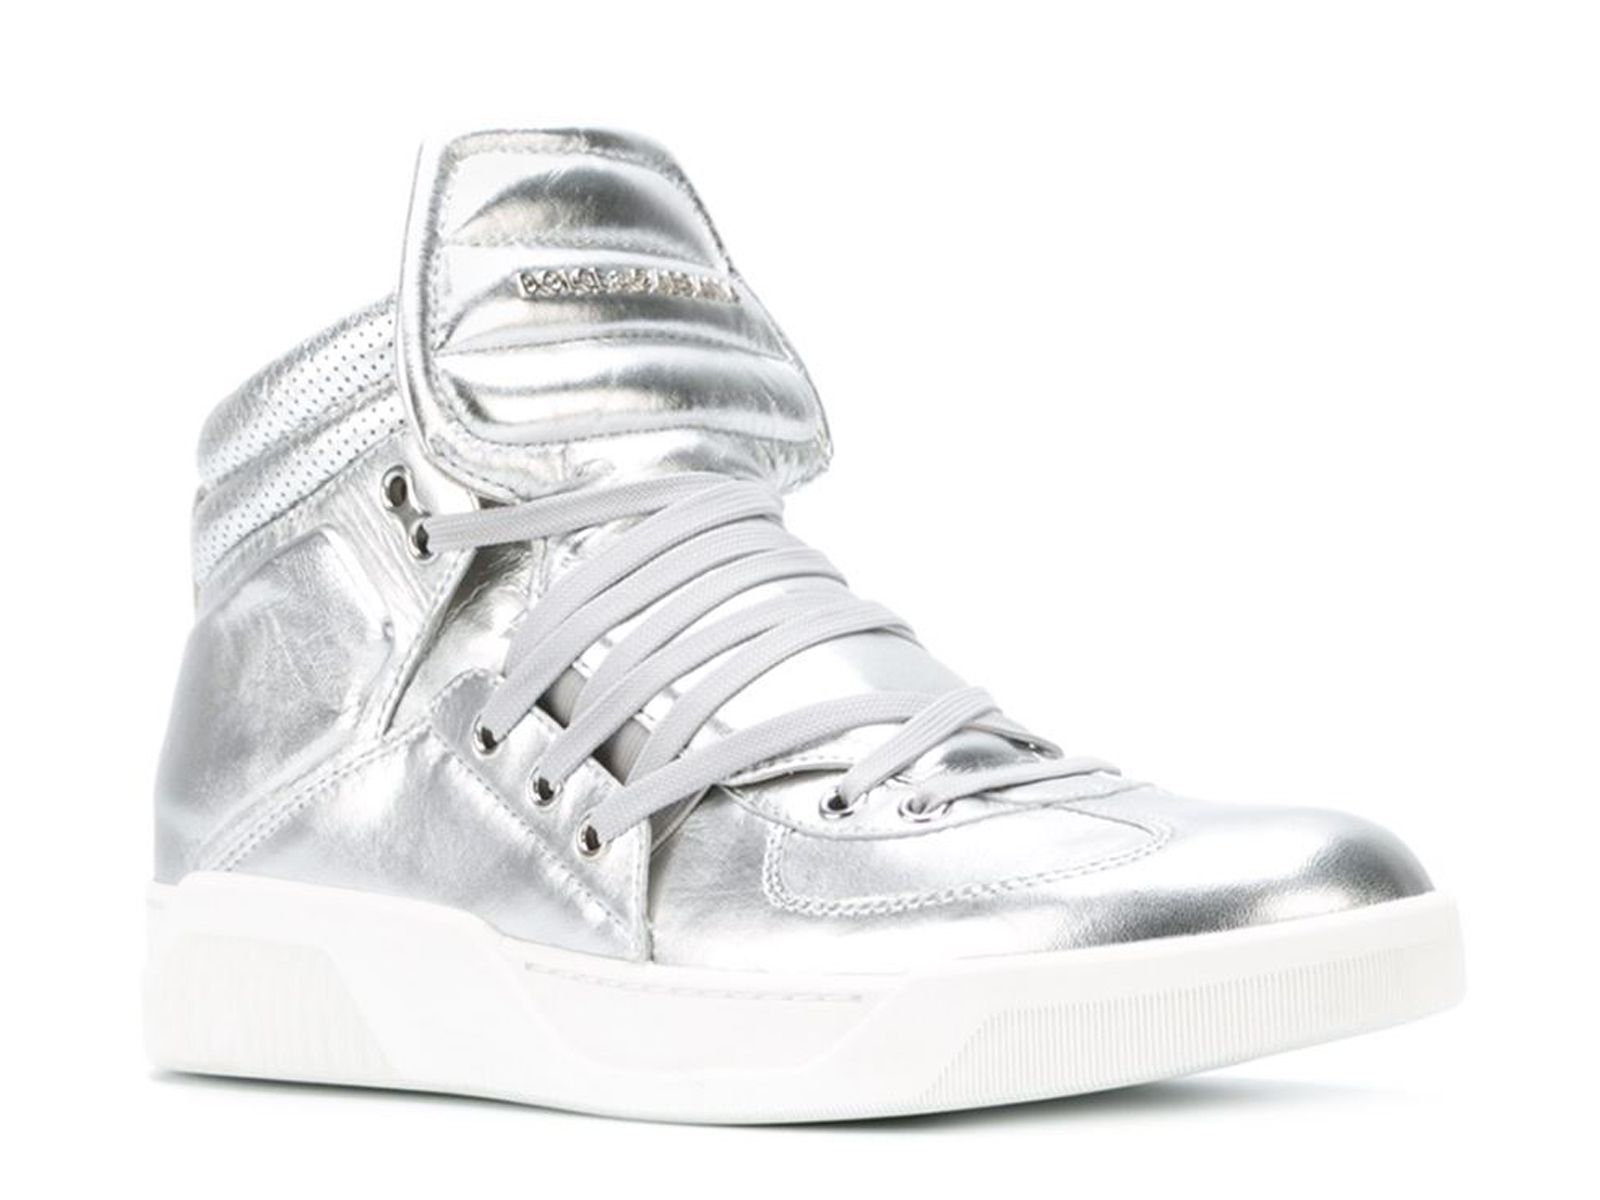 Dolce & Gabbana men's high sneakers in silver Leather